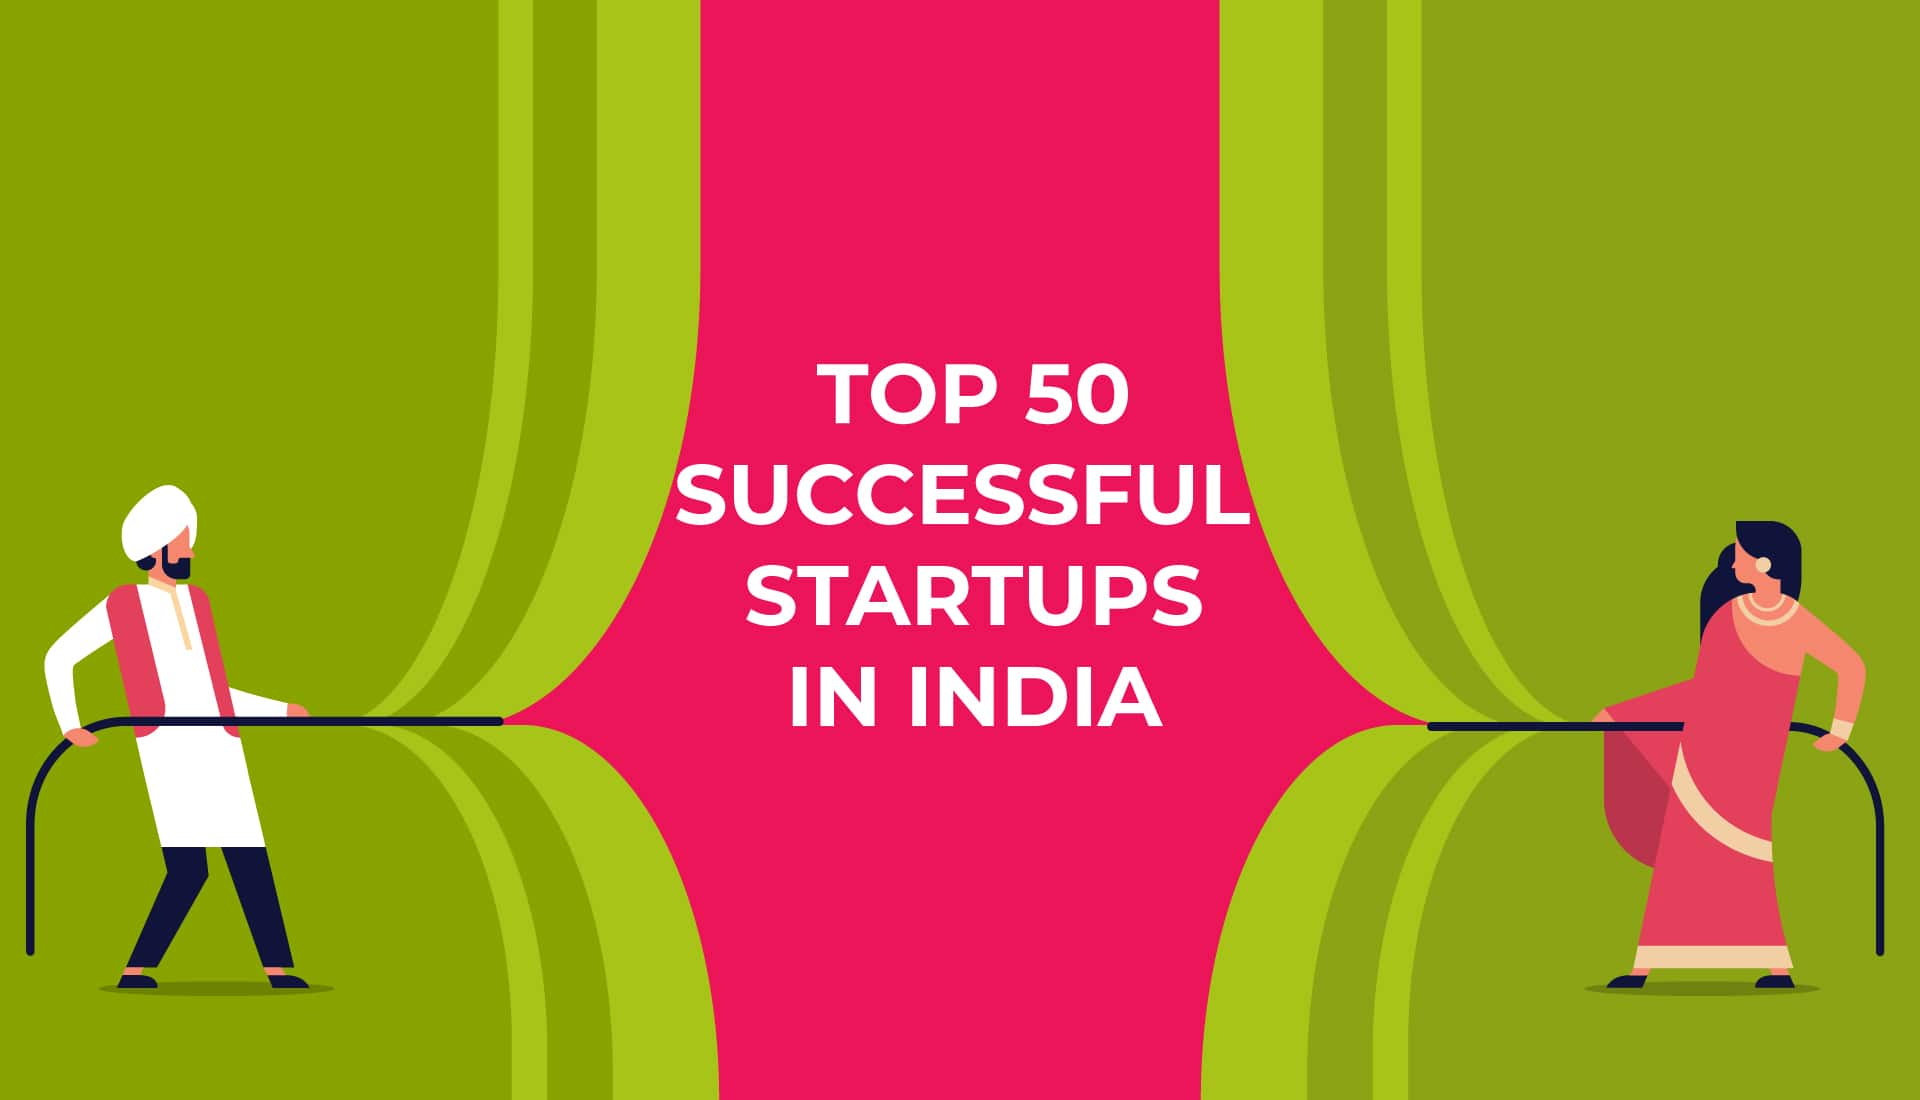 strawberry-branding-top-50-successful-startups-in-india